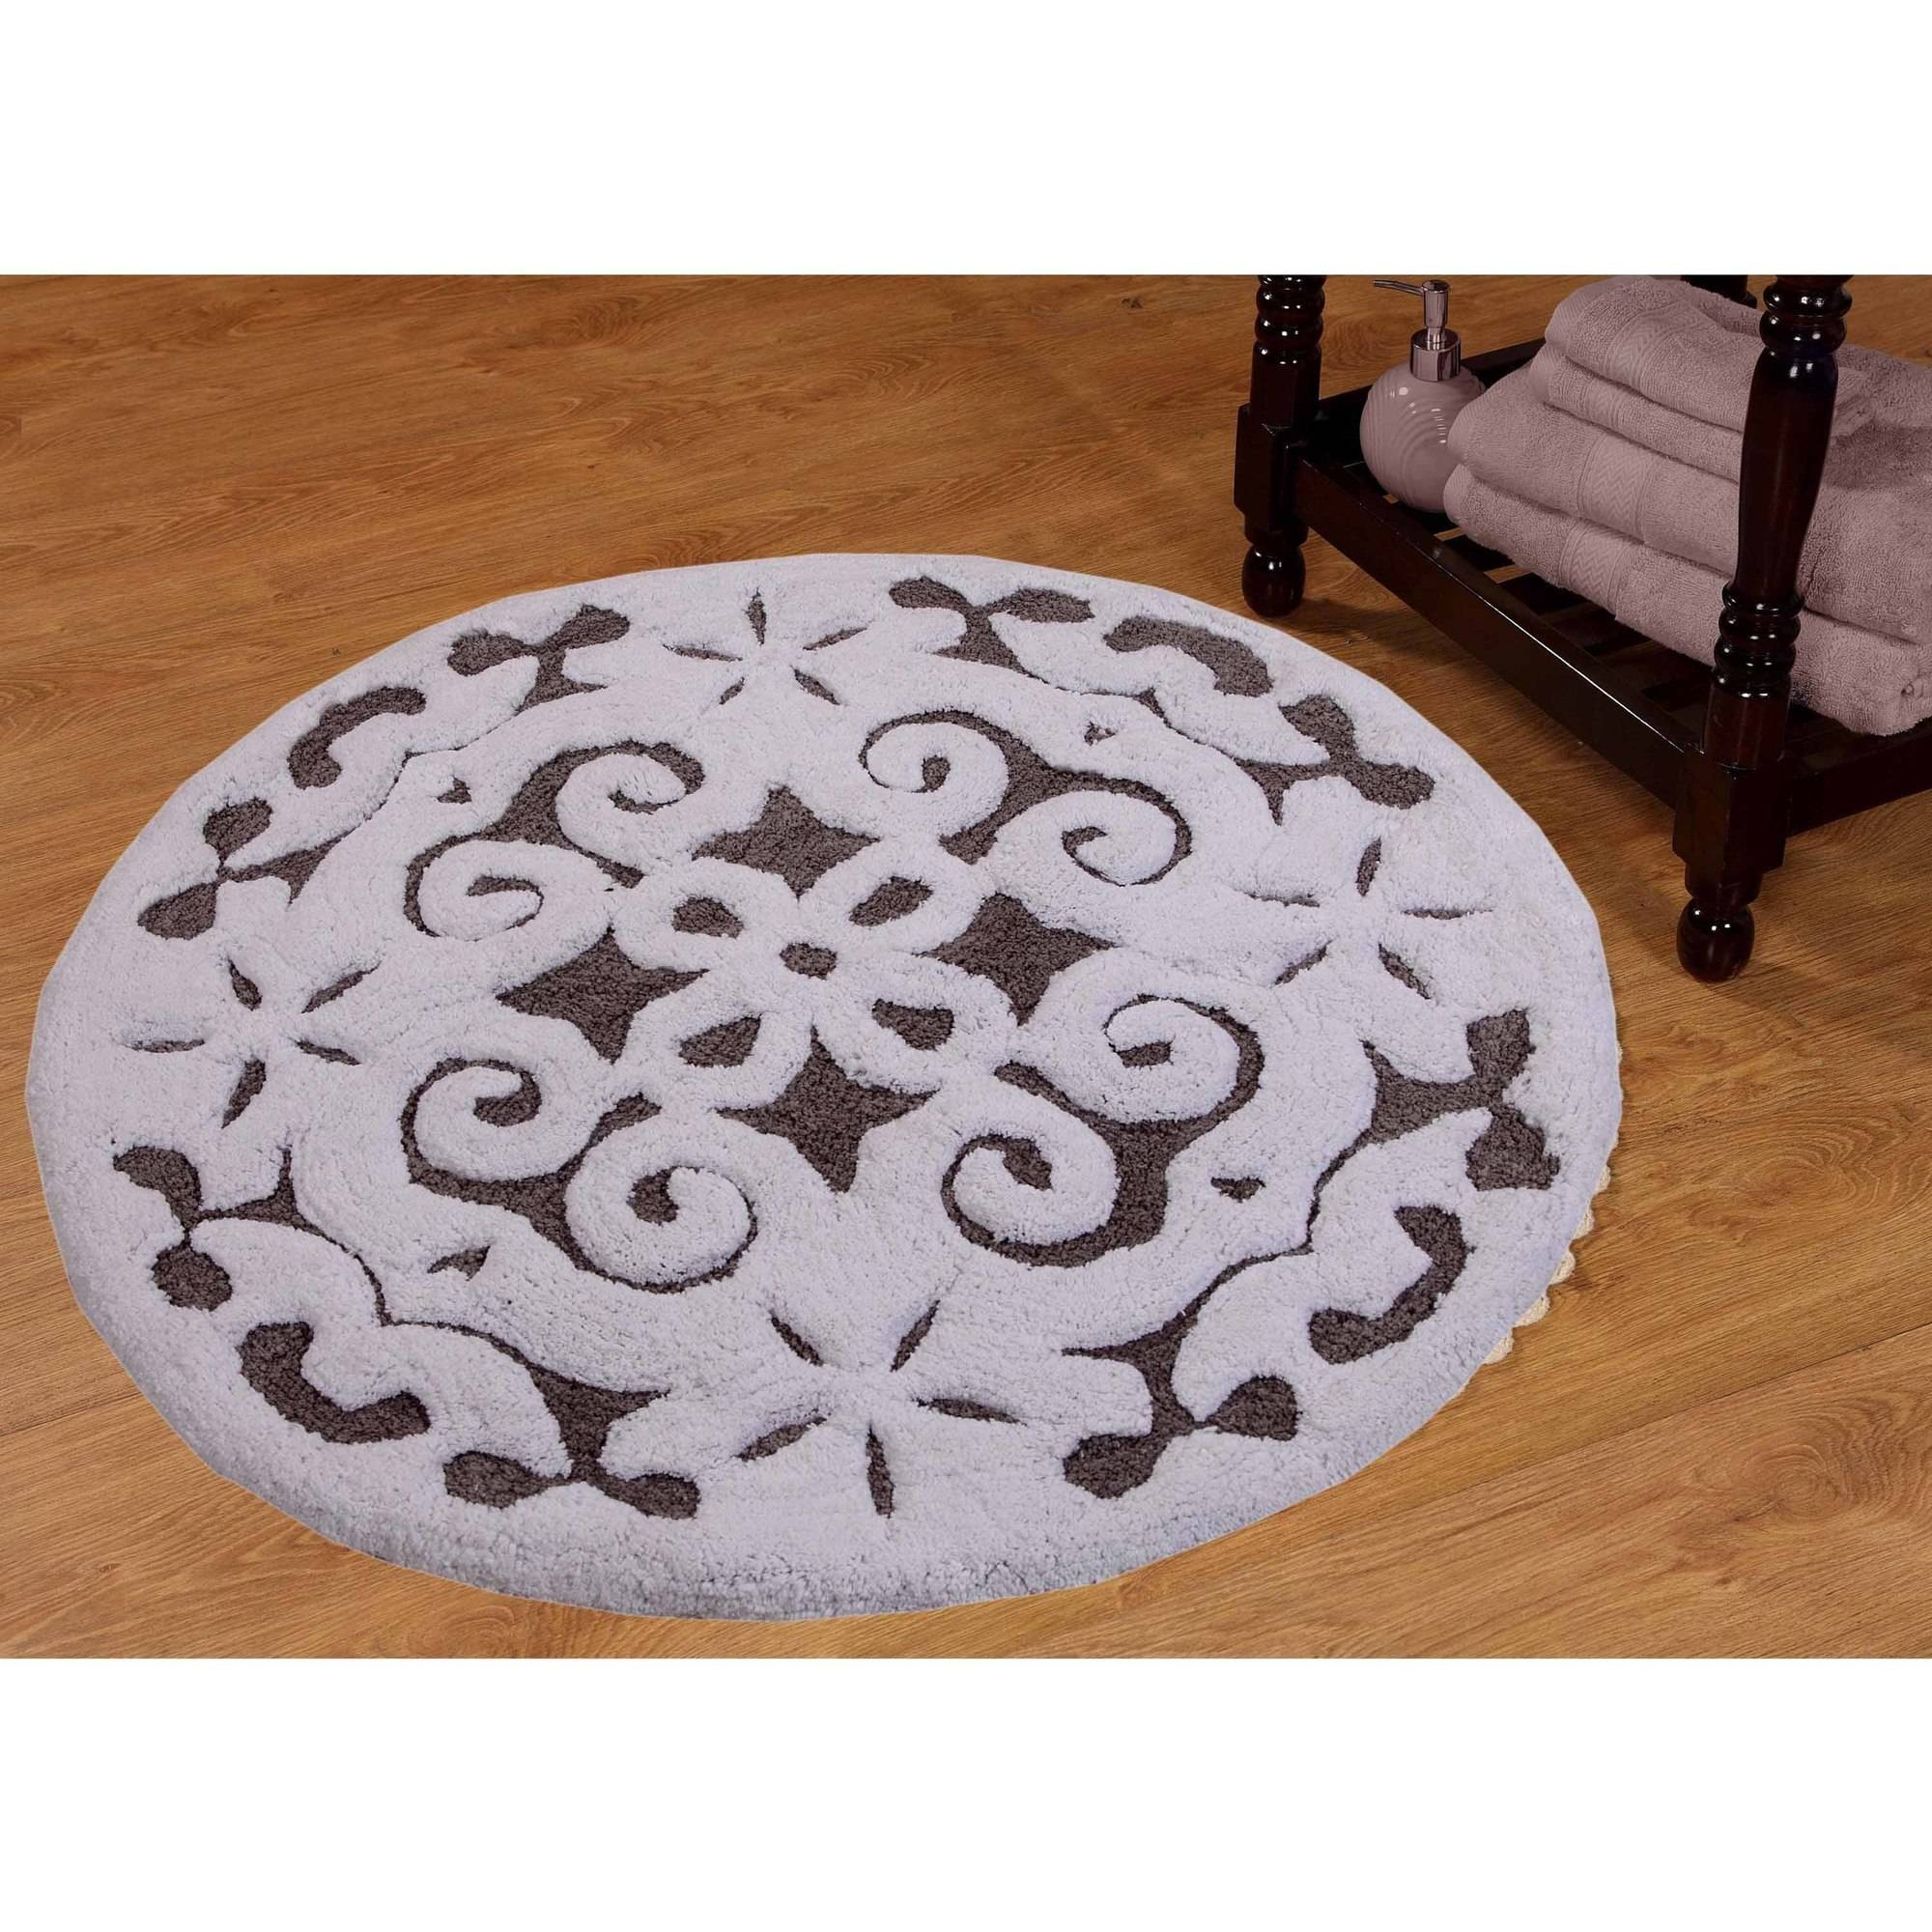 "Saffron Fabs Bath Rug, 36"" Round, Damask Pattern, Assorted Colors"